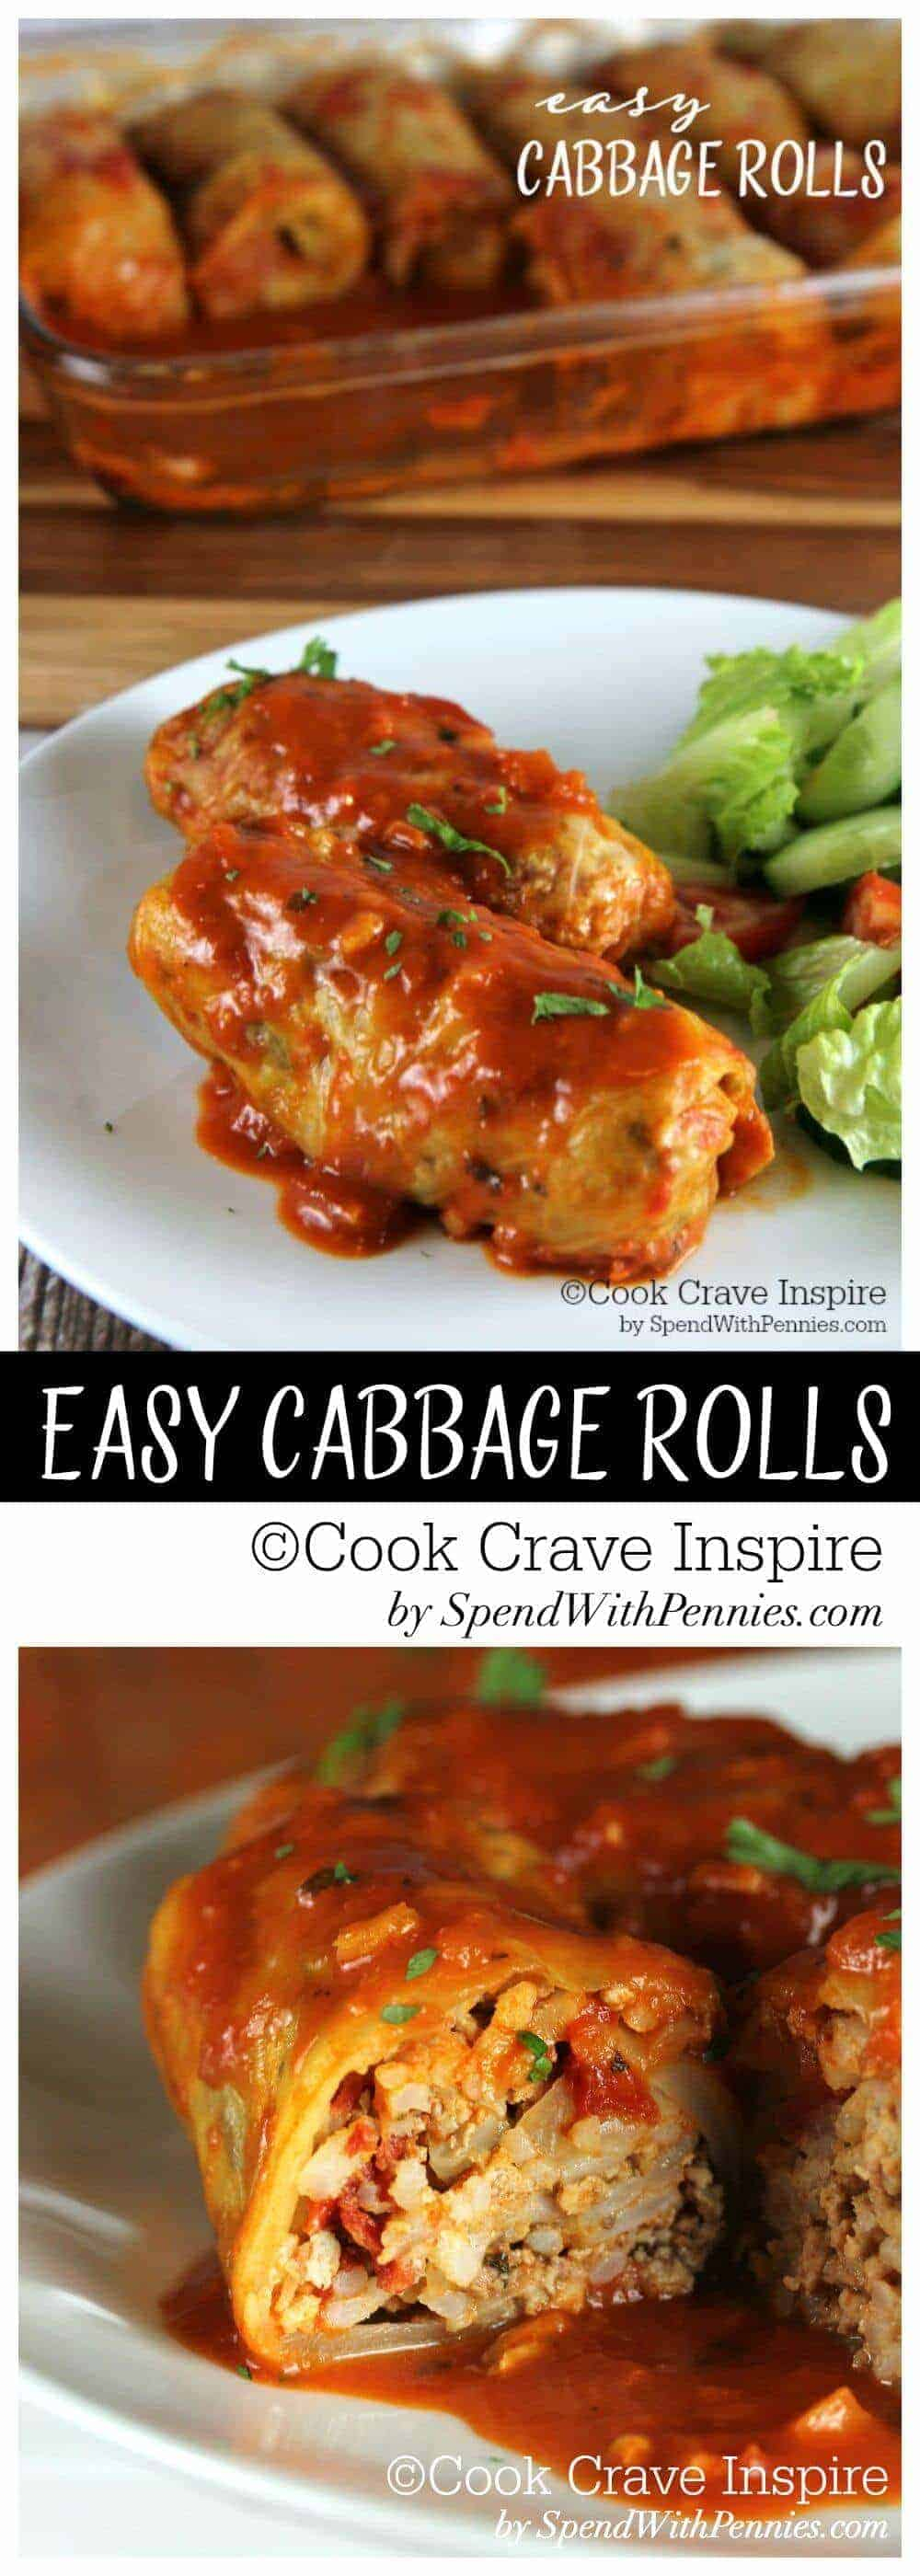 Easy Cabbage Rolls.with a title